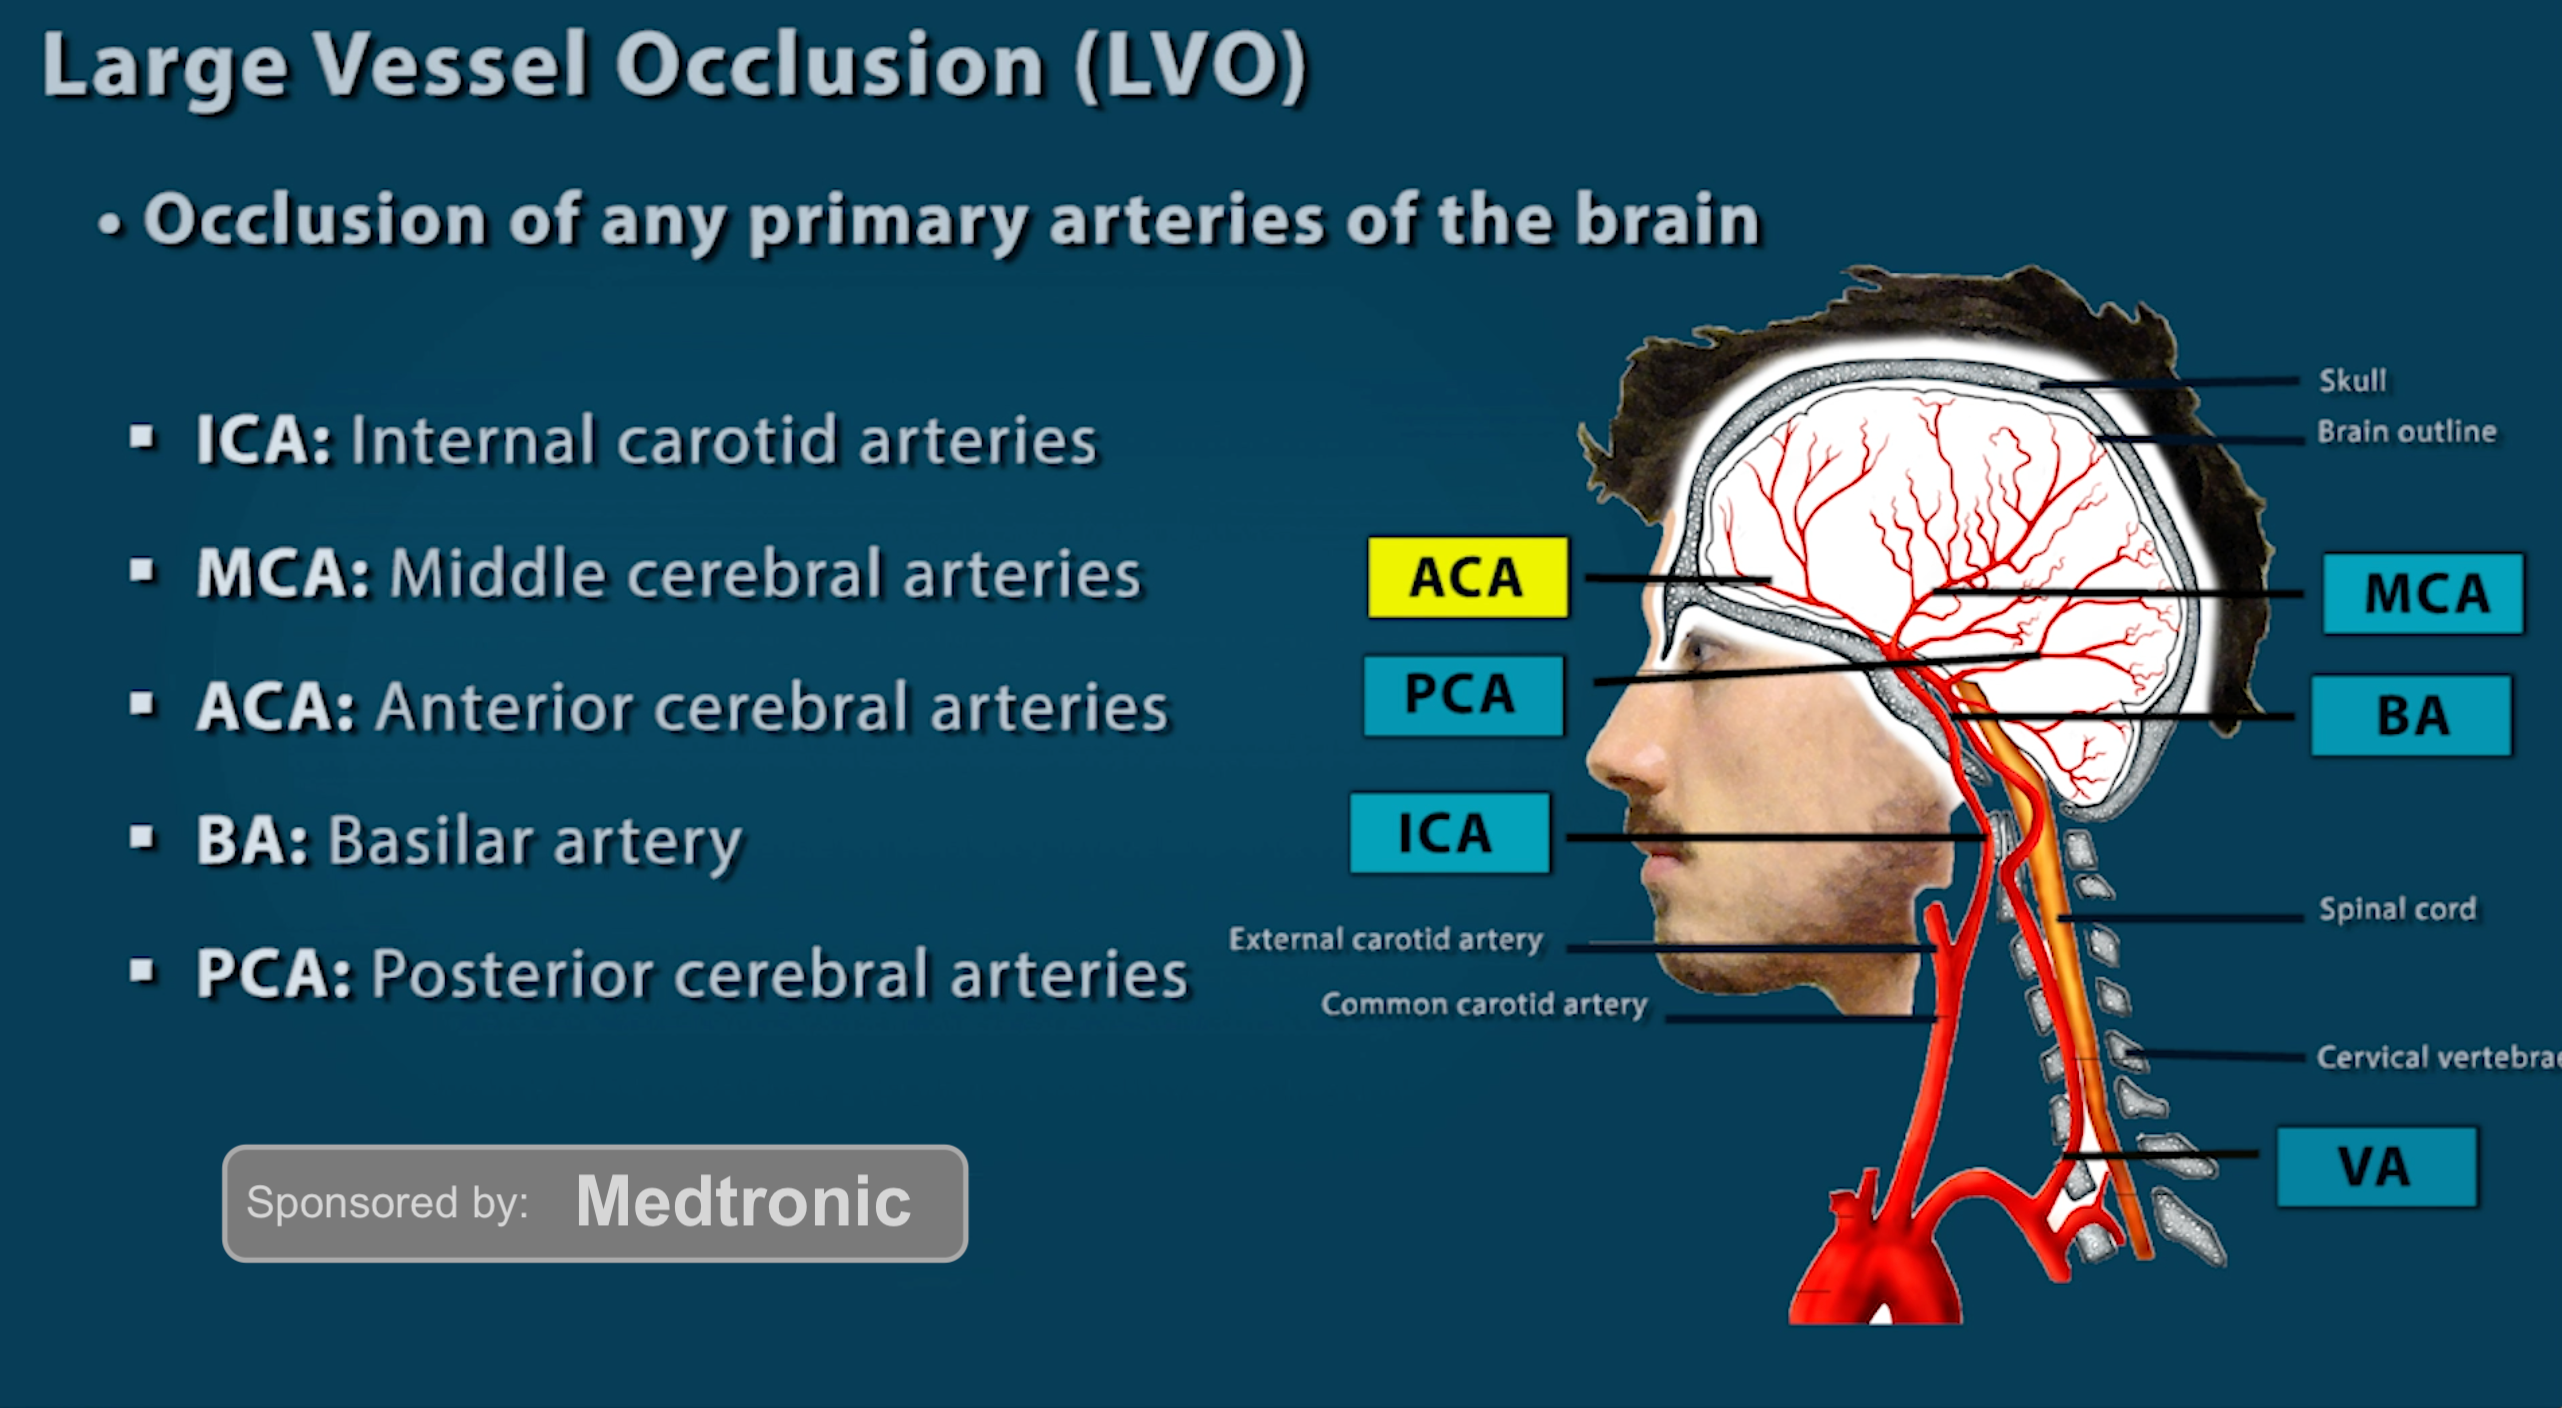 Large Vessel Occlusion Stroke